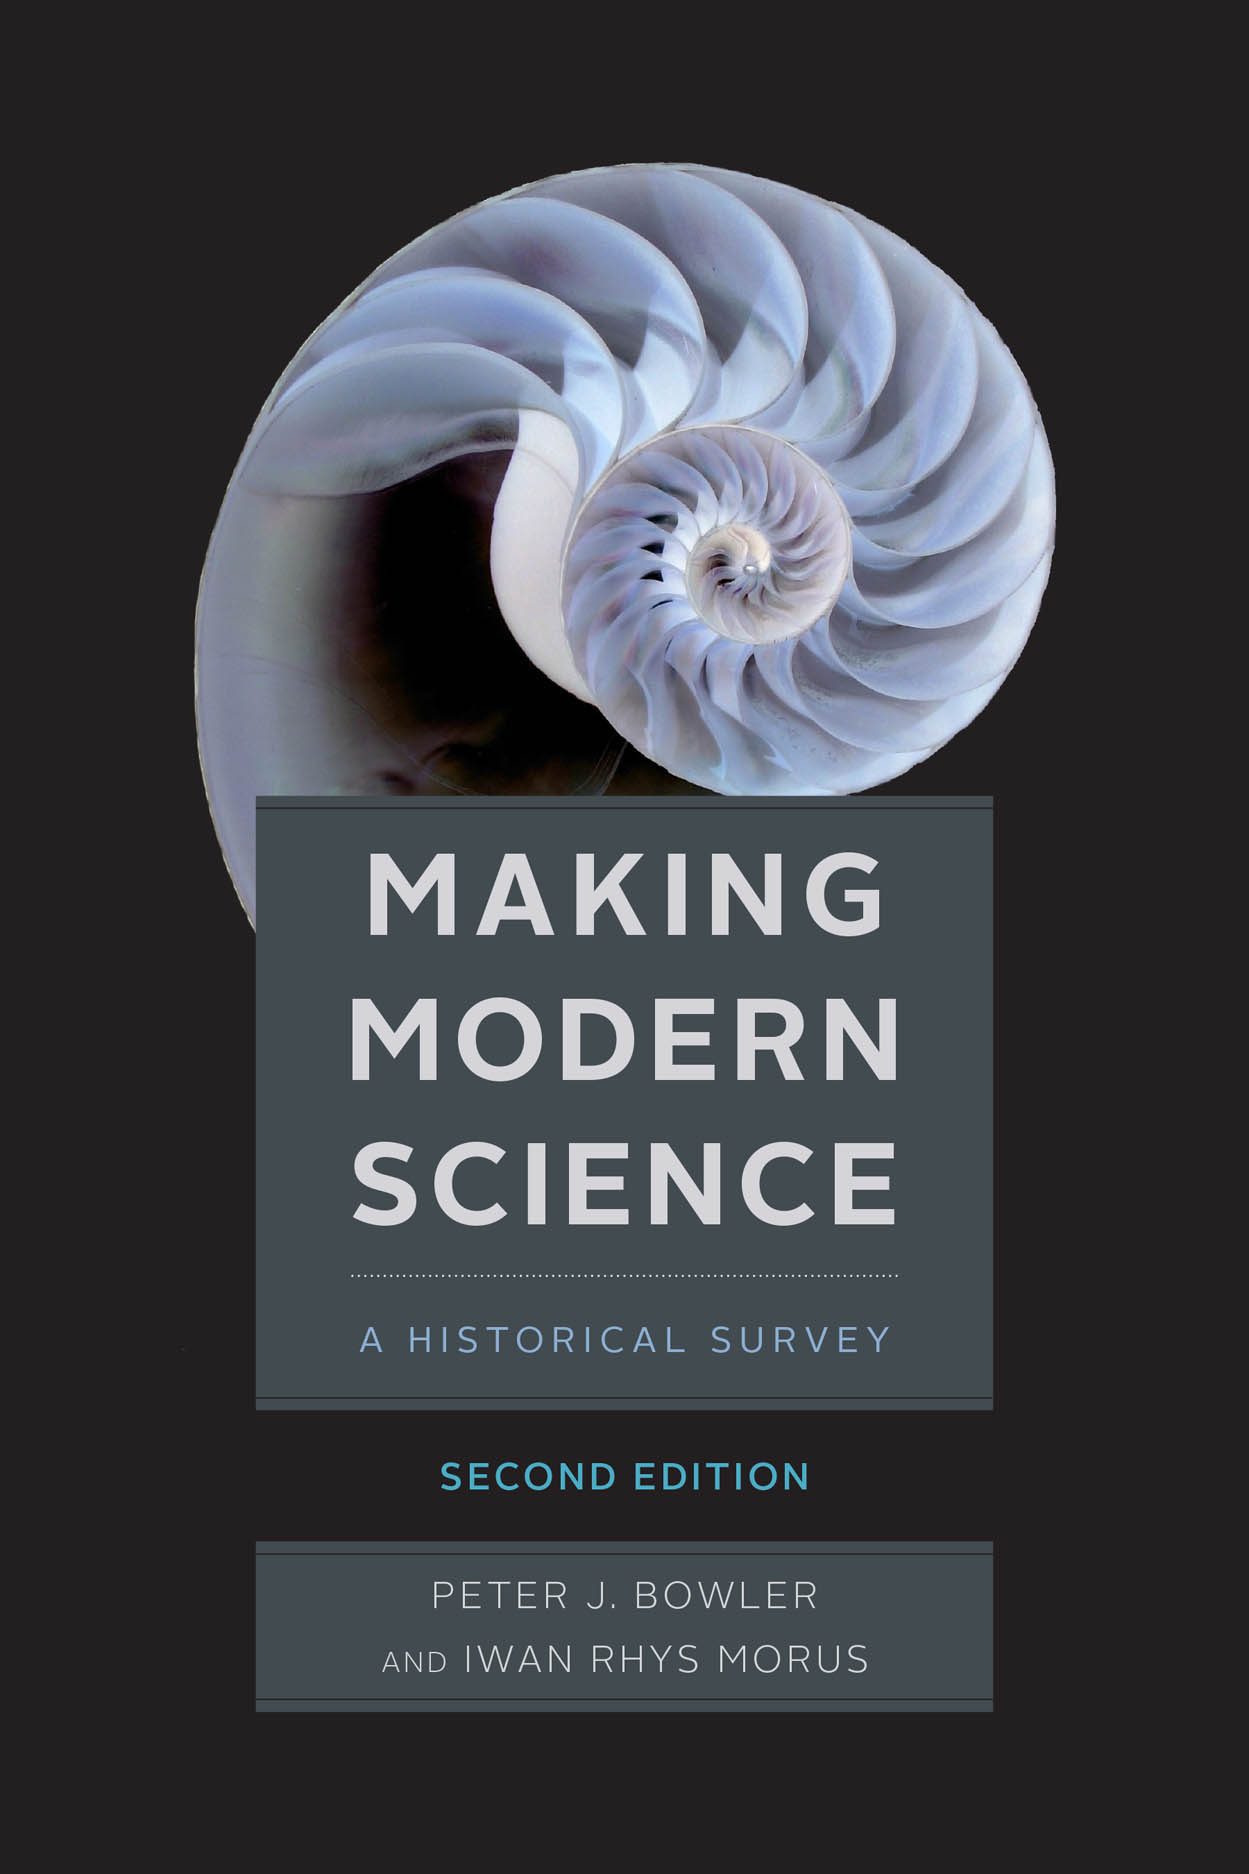 Making Modern Science, Second Edition